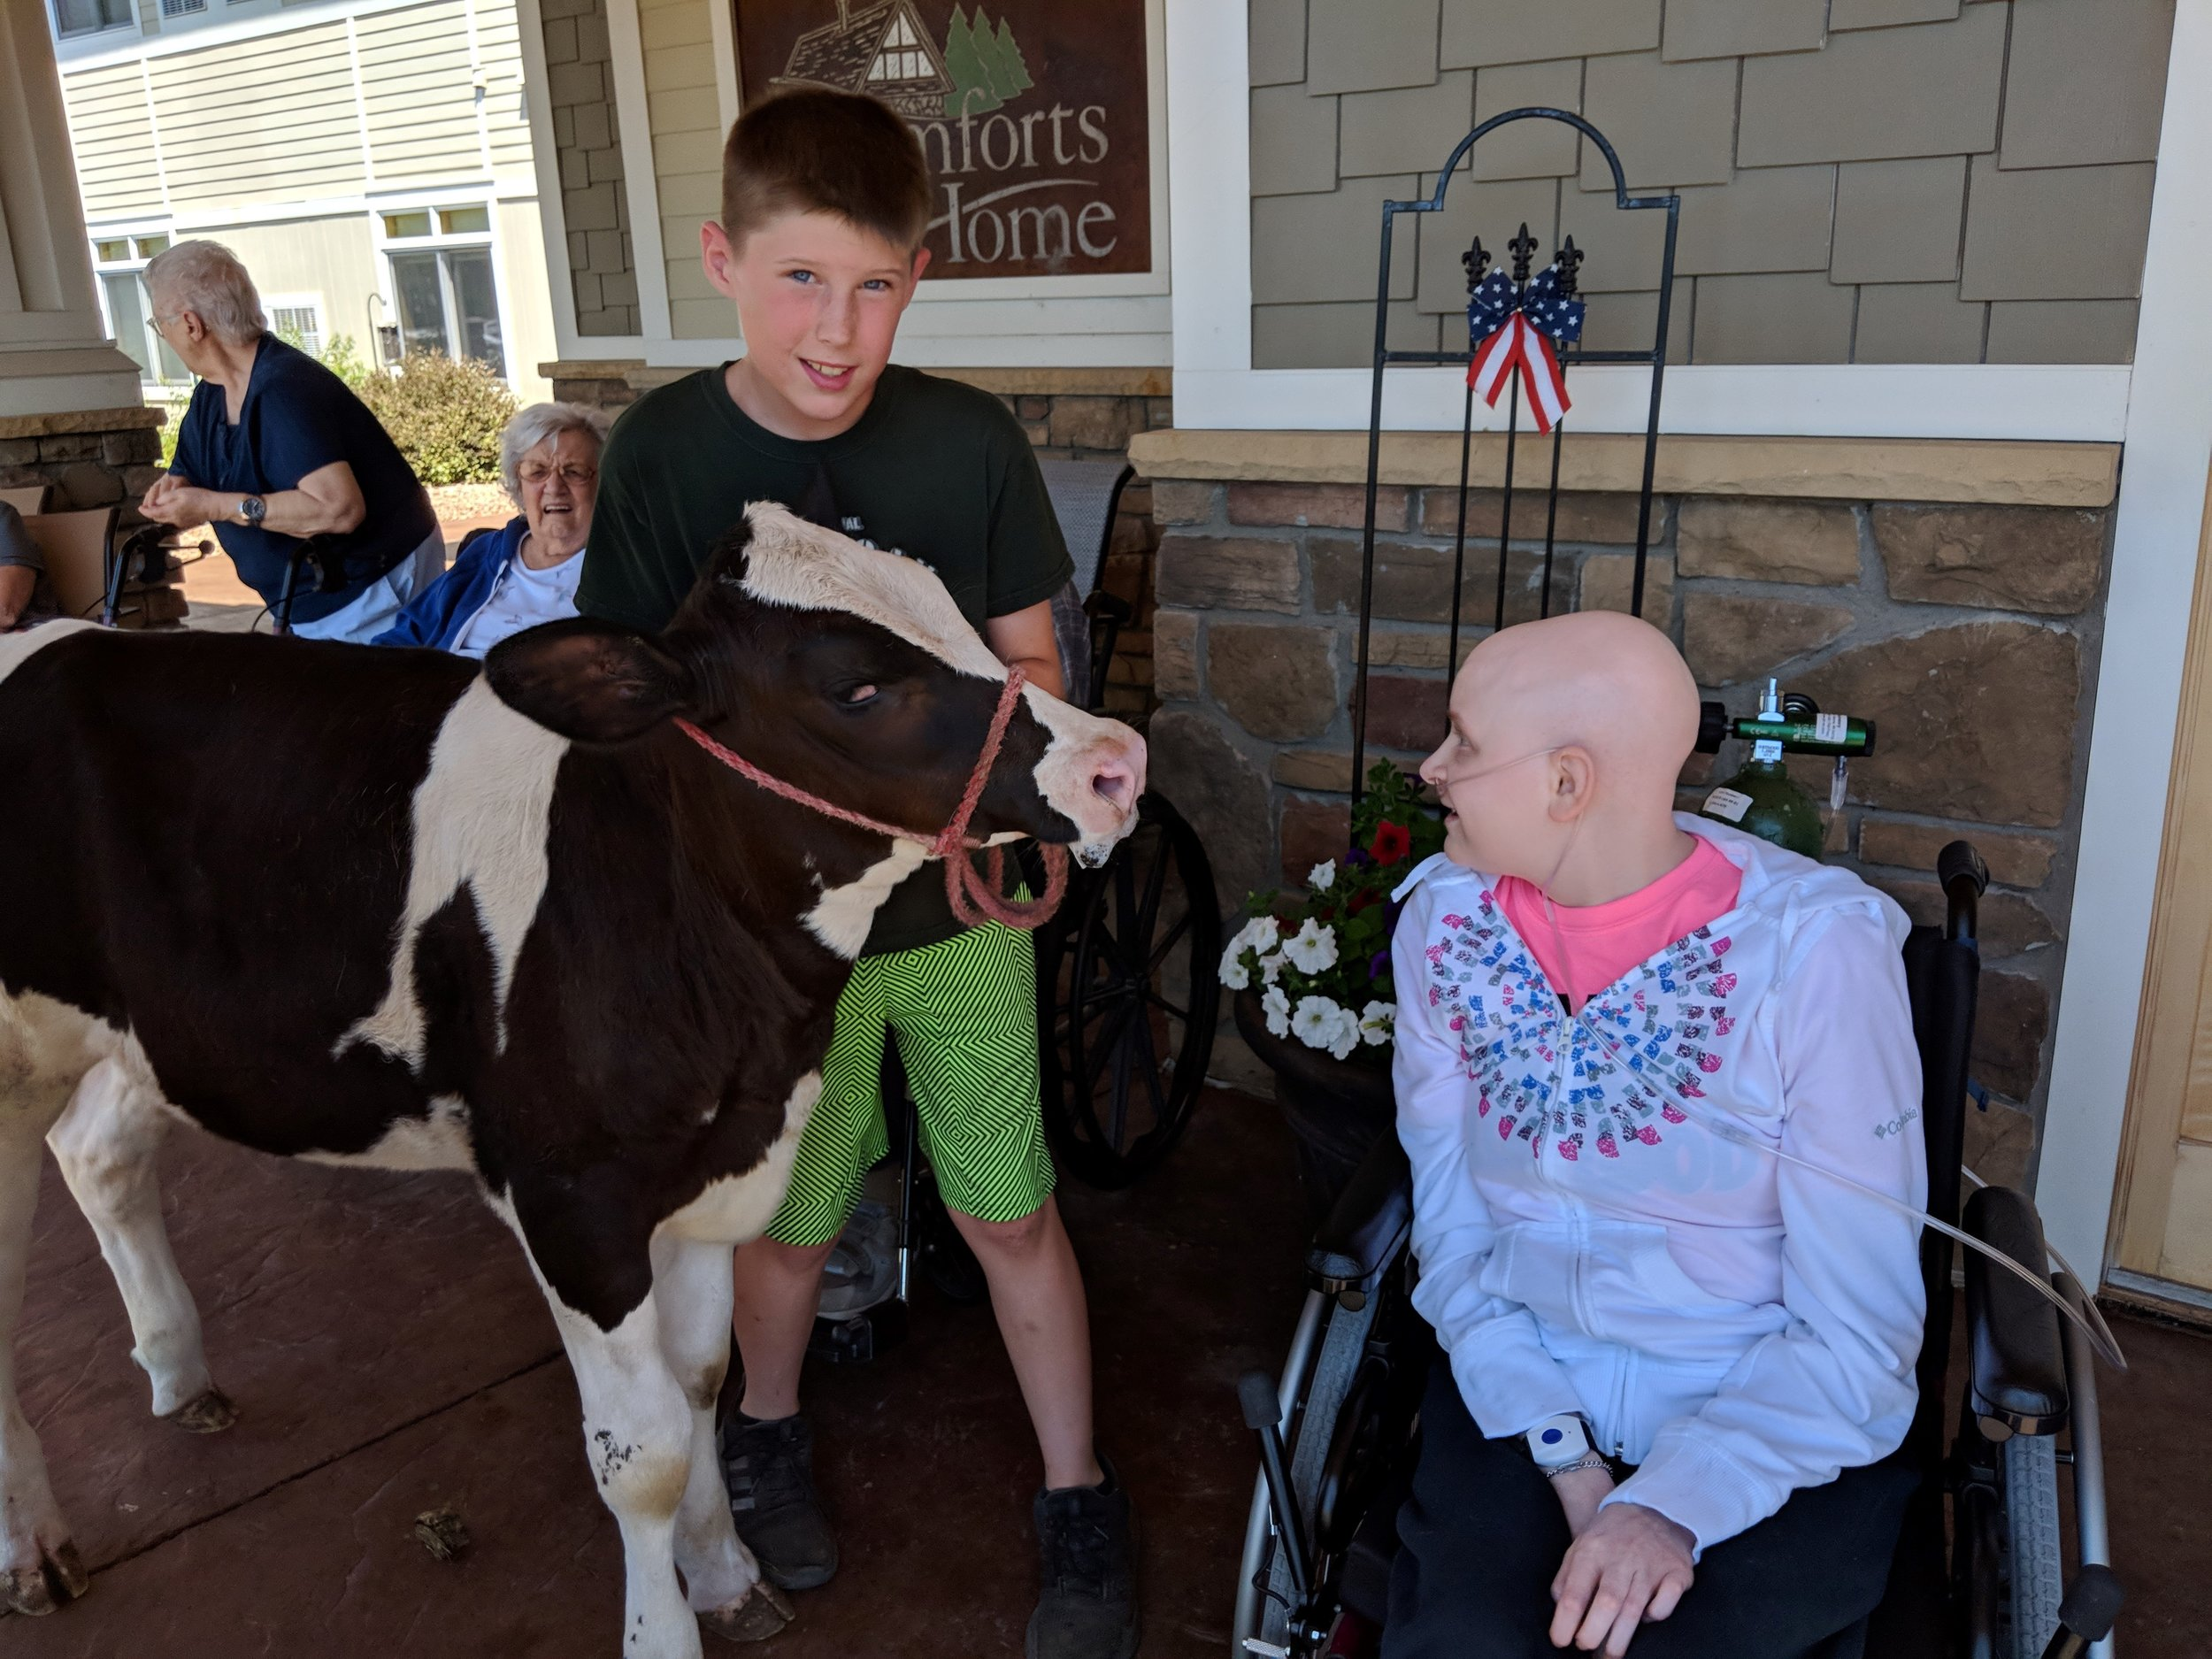 A visit from a fair calf & a donkey!! Thank you Courtney for sharing your time and animals with our tenants! 1.jpg